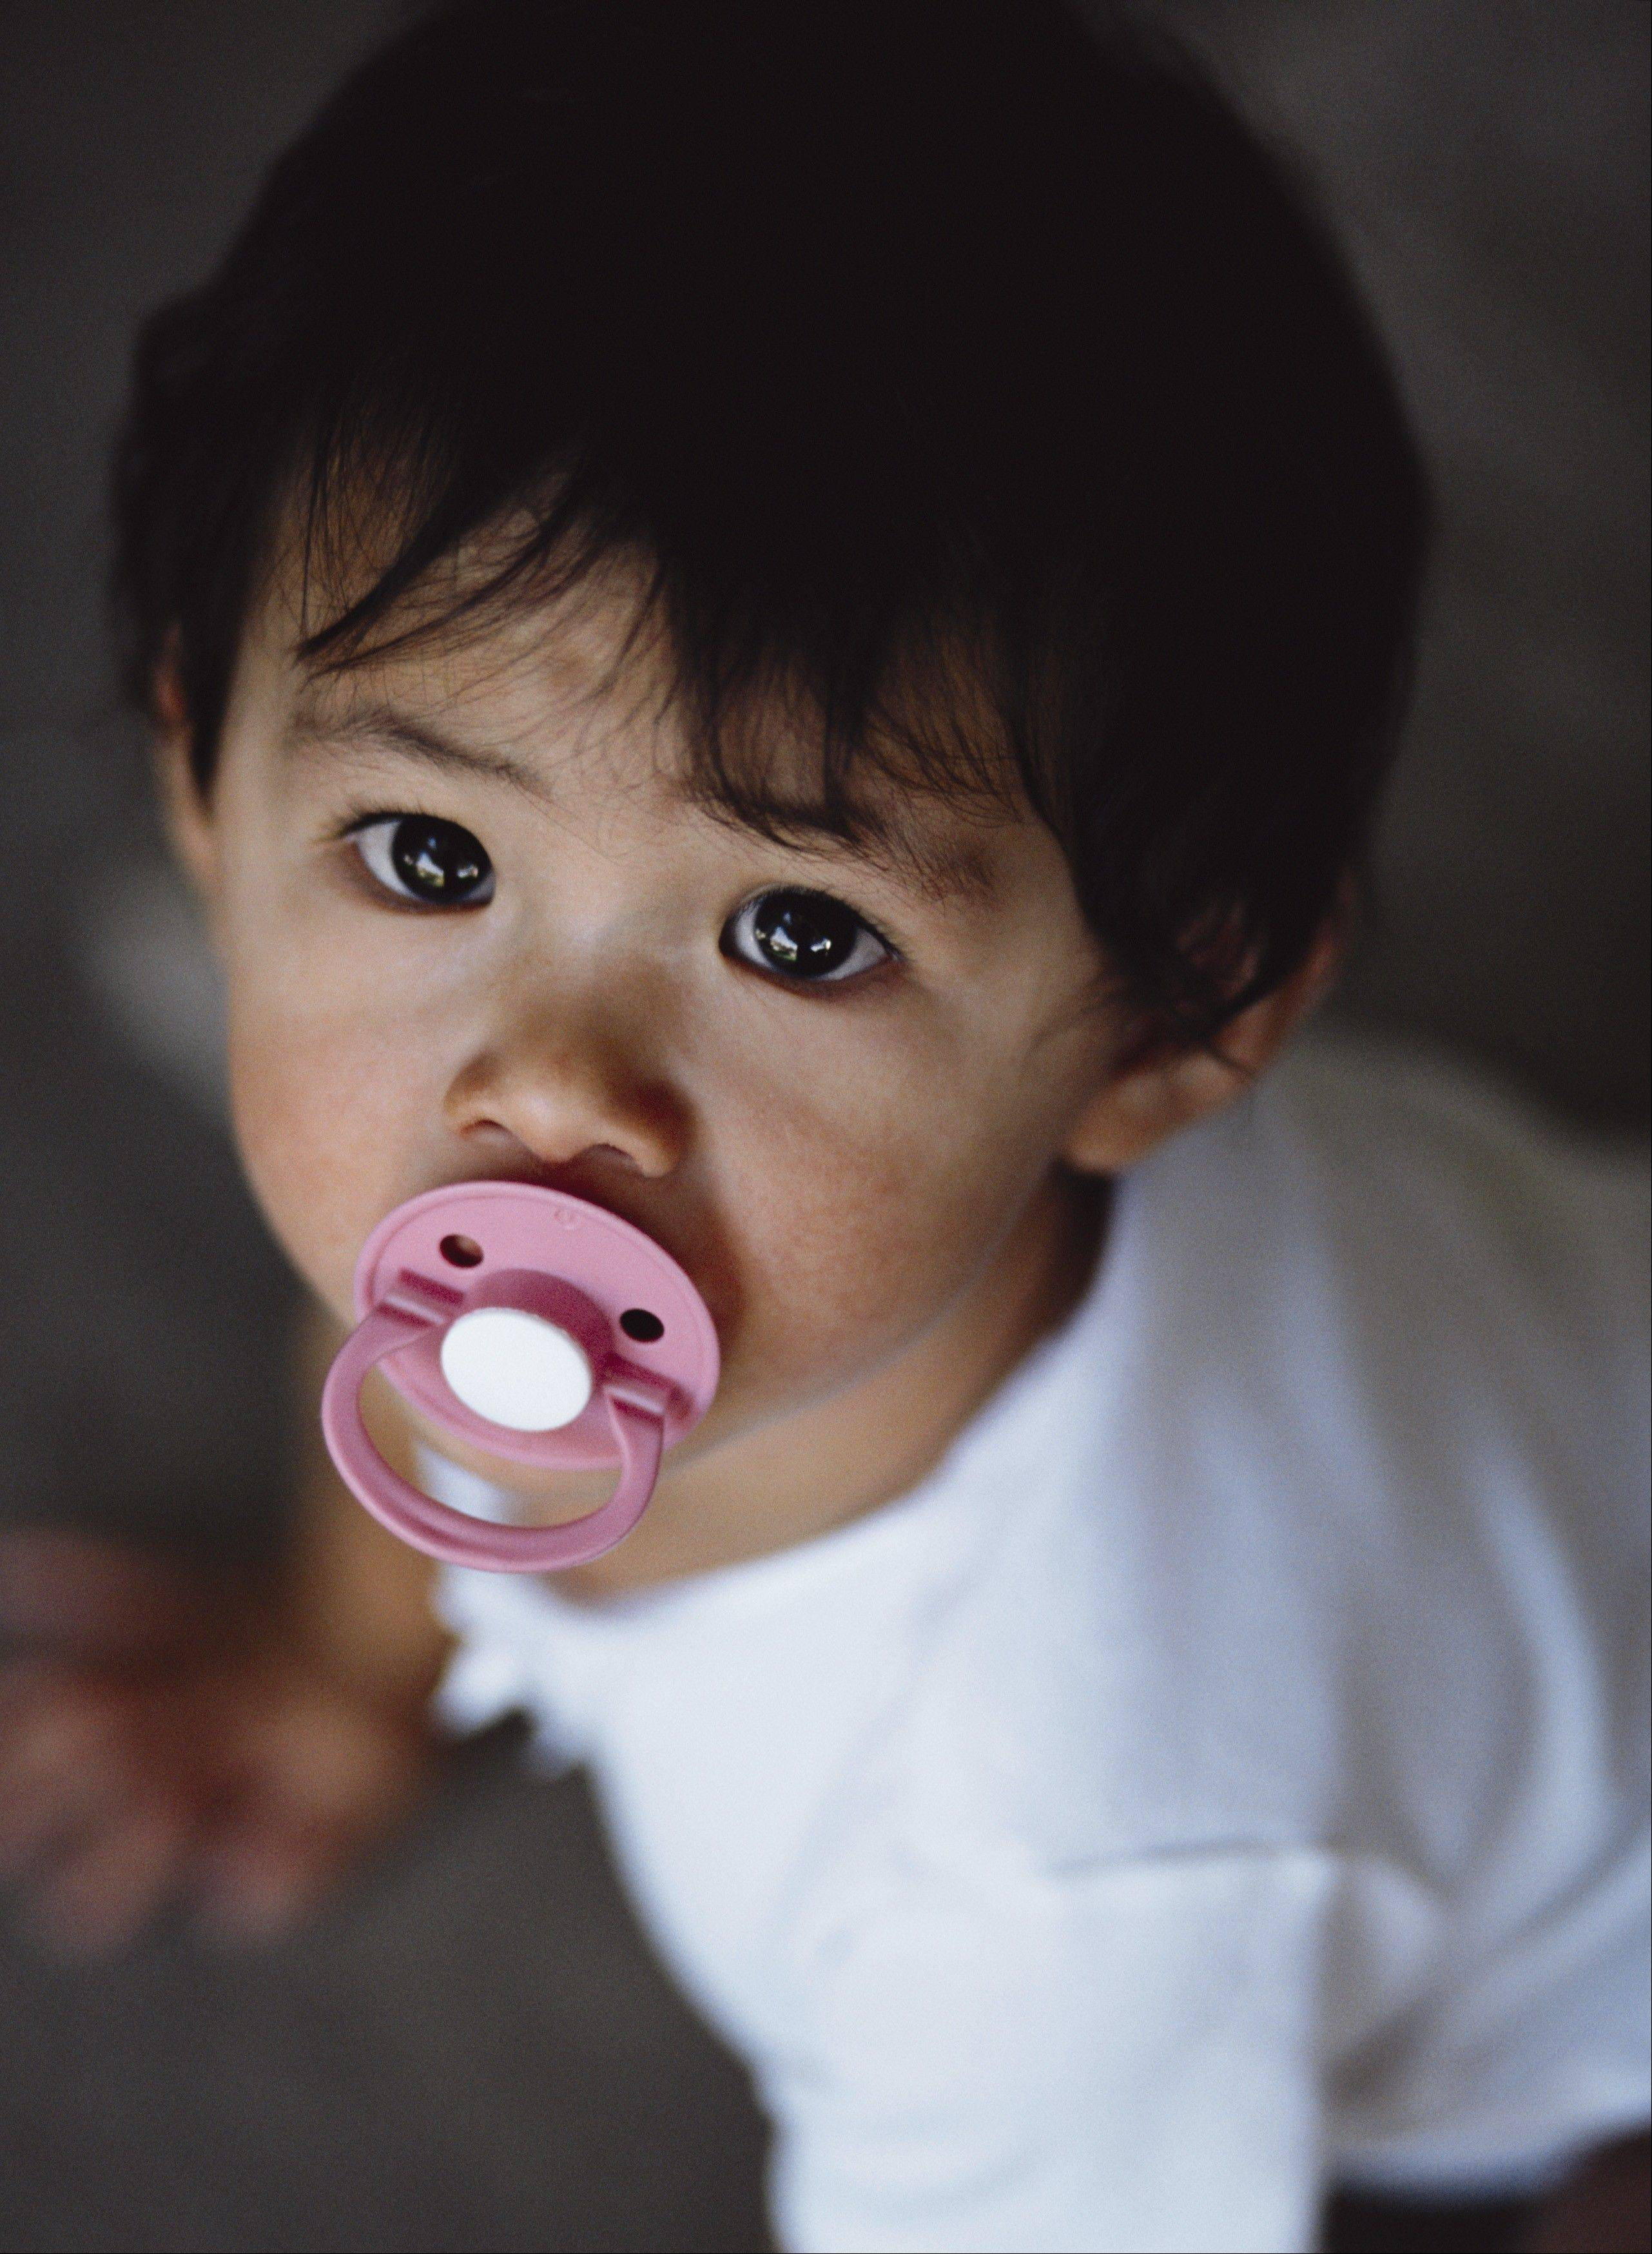 Some children use pacifiers and other transition objects to relieve stress but the attachment rarely goes beyond preschool.